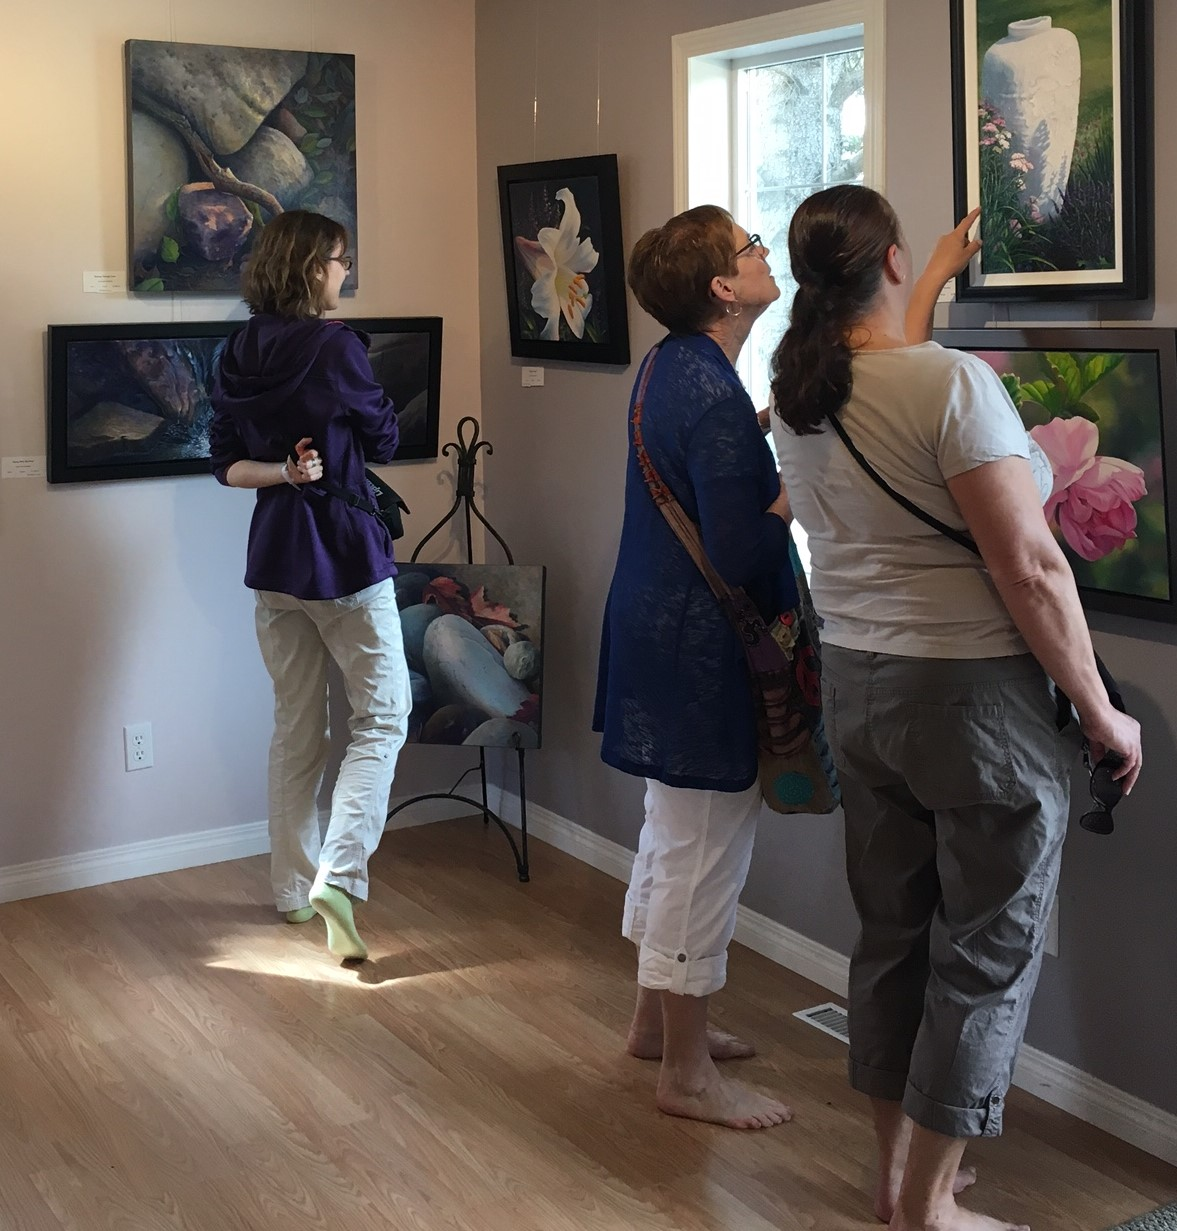 Guests looking at art in the studio Saturday morning.